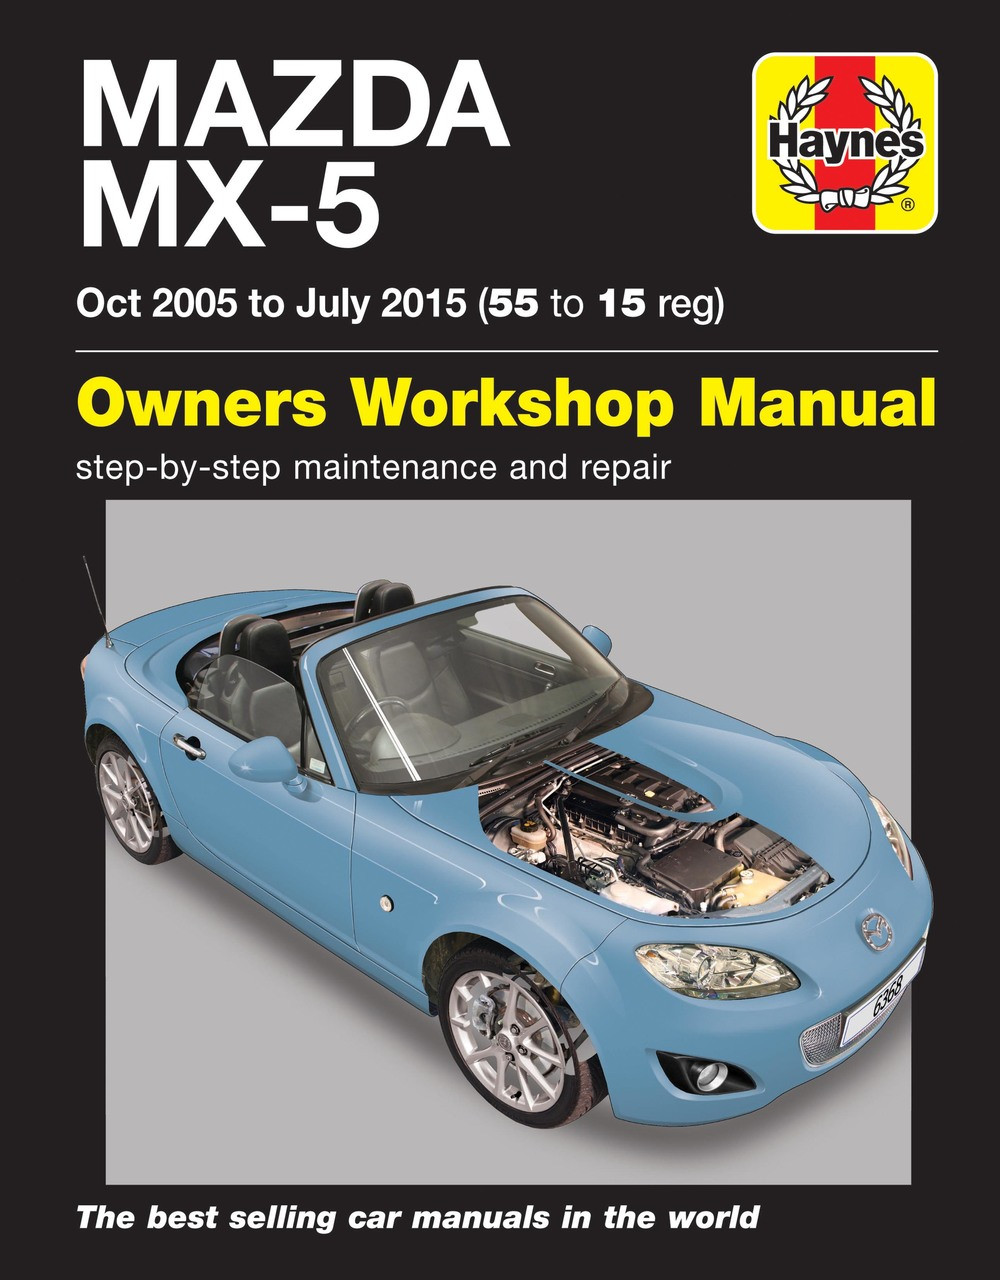 mazda mx 5 oct 05 july 15 55 to 15 haynes repair manual rh automotobookshop com au Ford Workshop Manuals Workshop Manuals Oilfield Well Testing